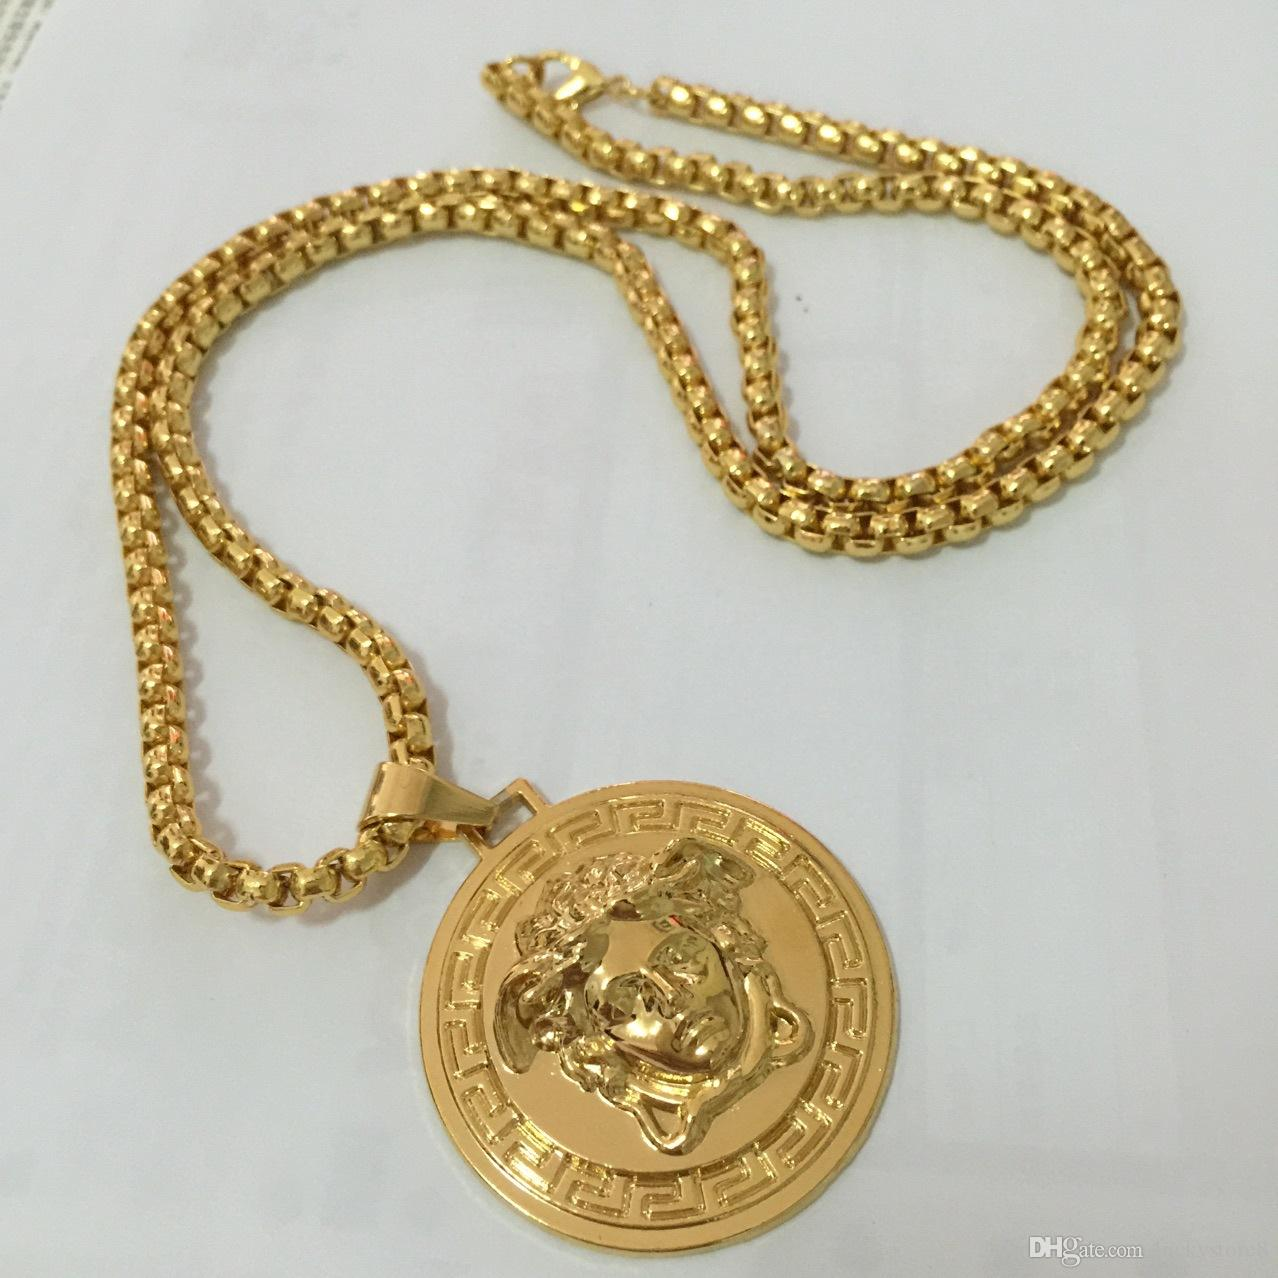 Top Quality Medusa Pendant Necklaces For Men 2017 Hot Hiphop Jewelry Gold Plated Luxury Accessories